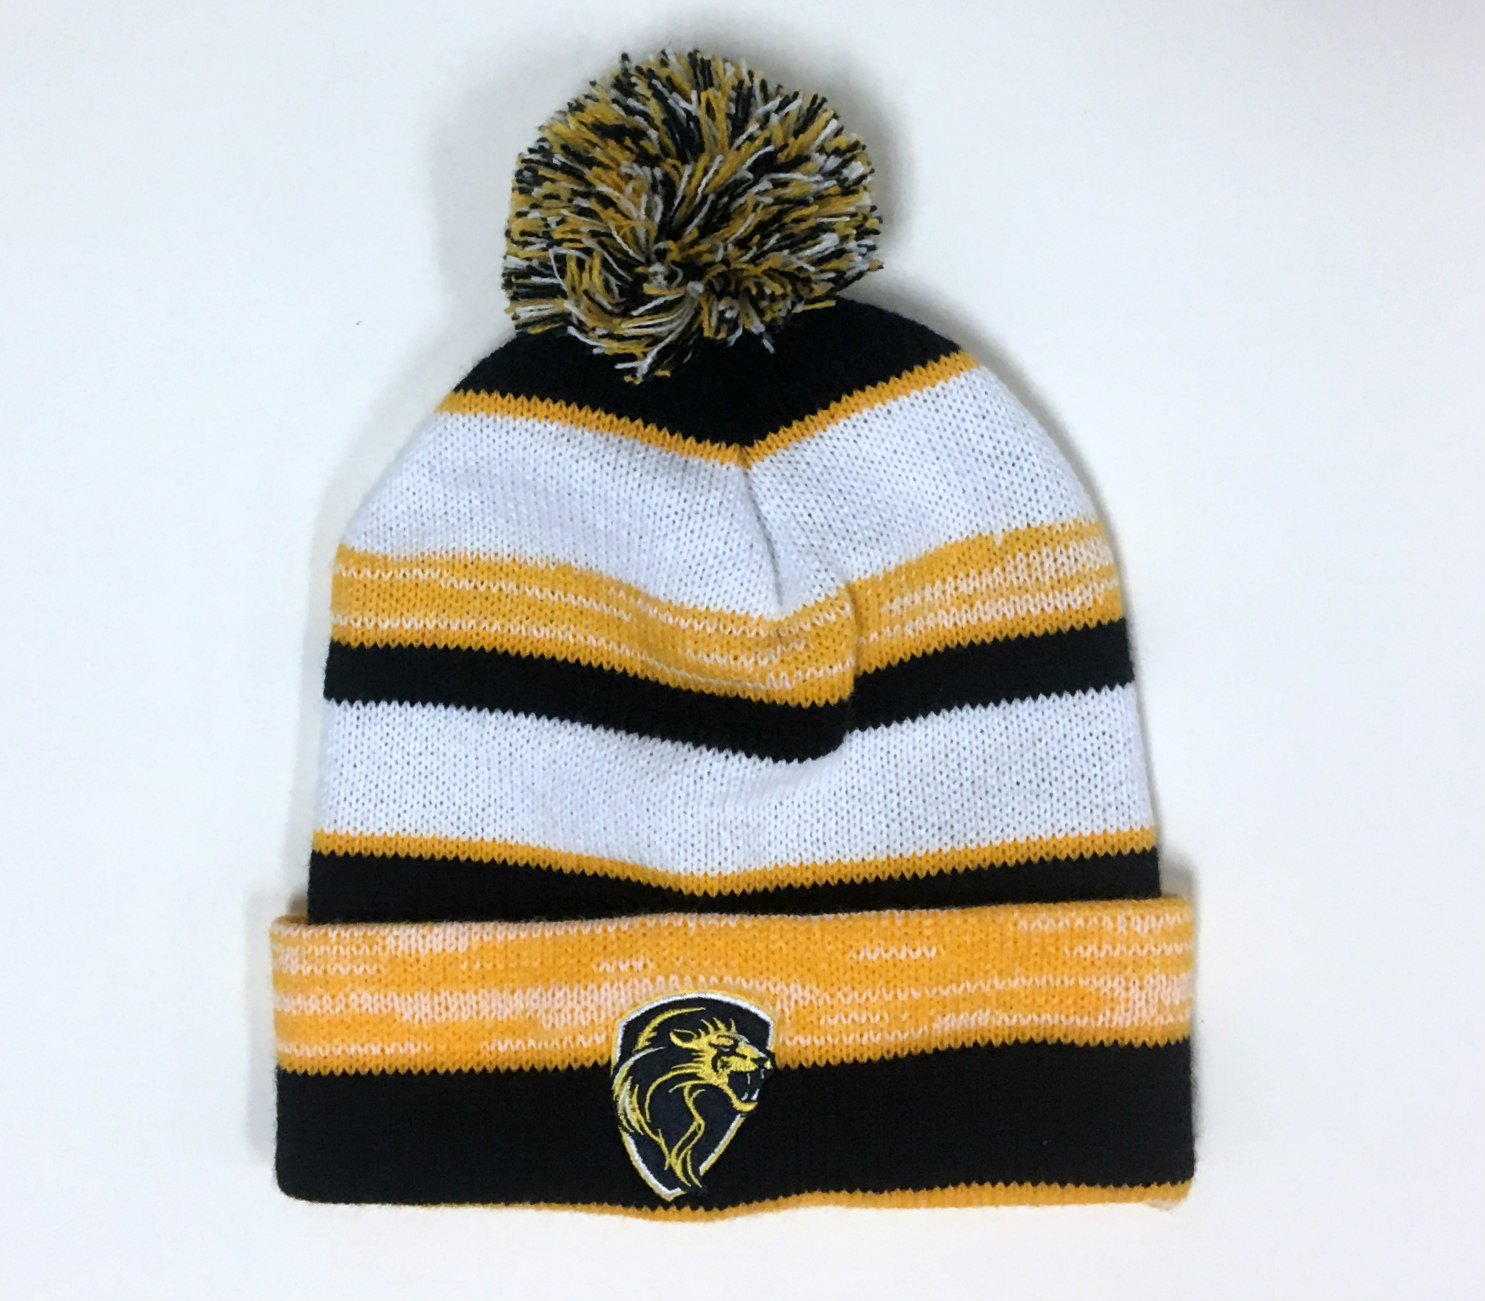 Image for the Cuff Beanie Knit Hat w/Pom Navy & Gold product